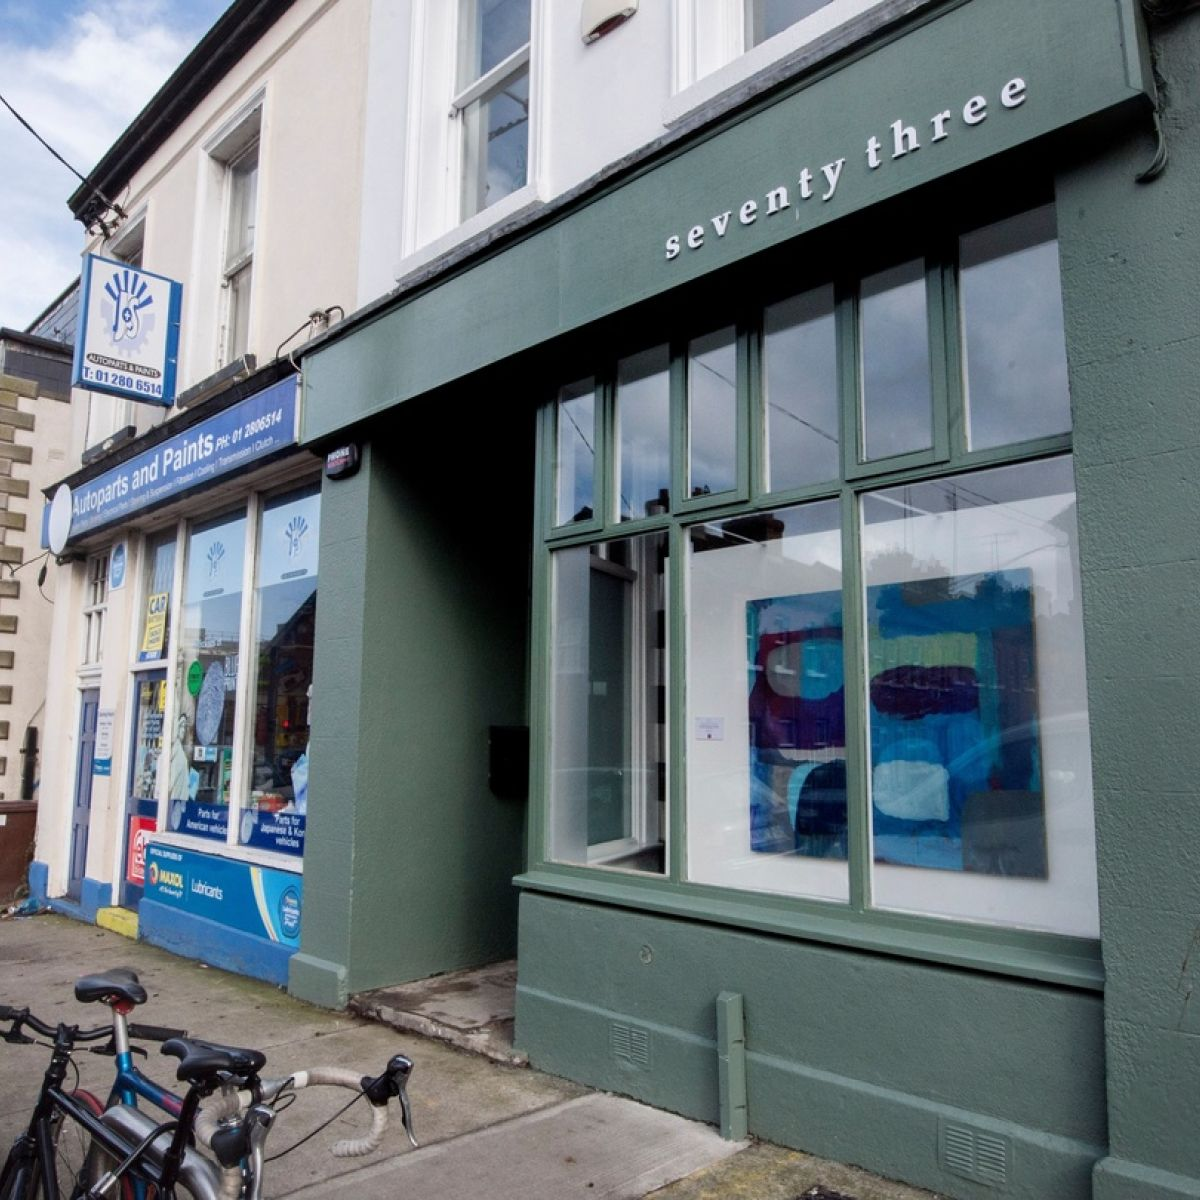 New restaurant brings an authentic slice of Italy to Stoneybatter